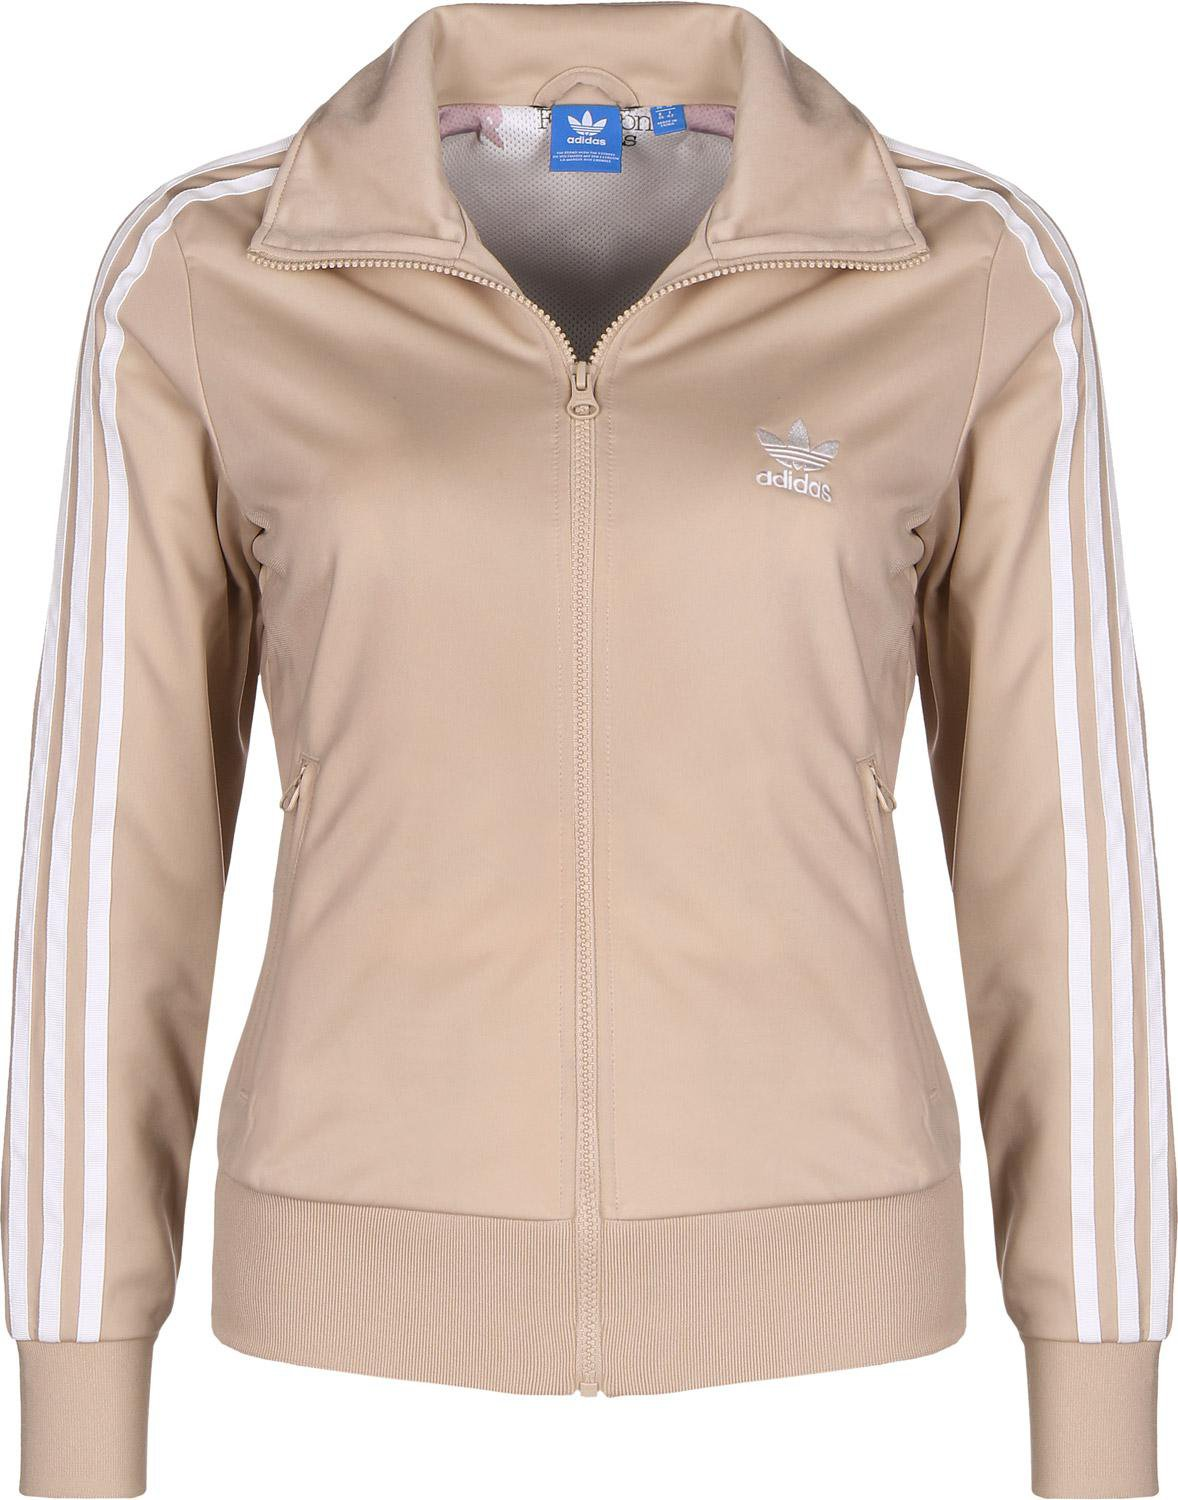 Adidas Frauen Firebird Trainingsjacke